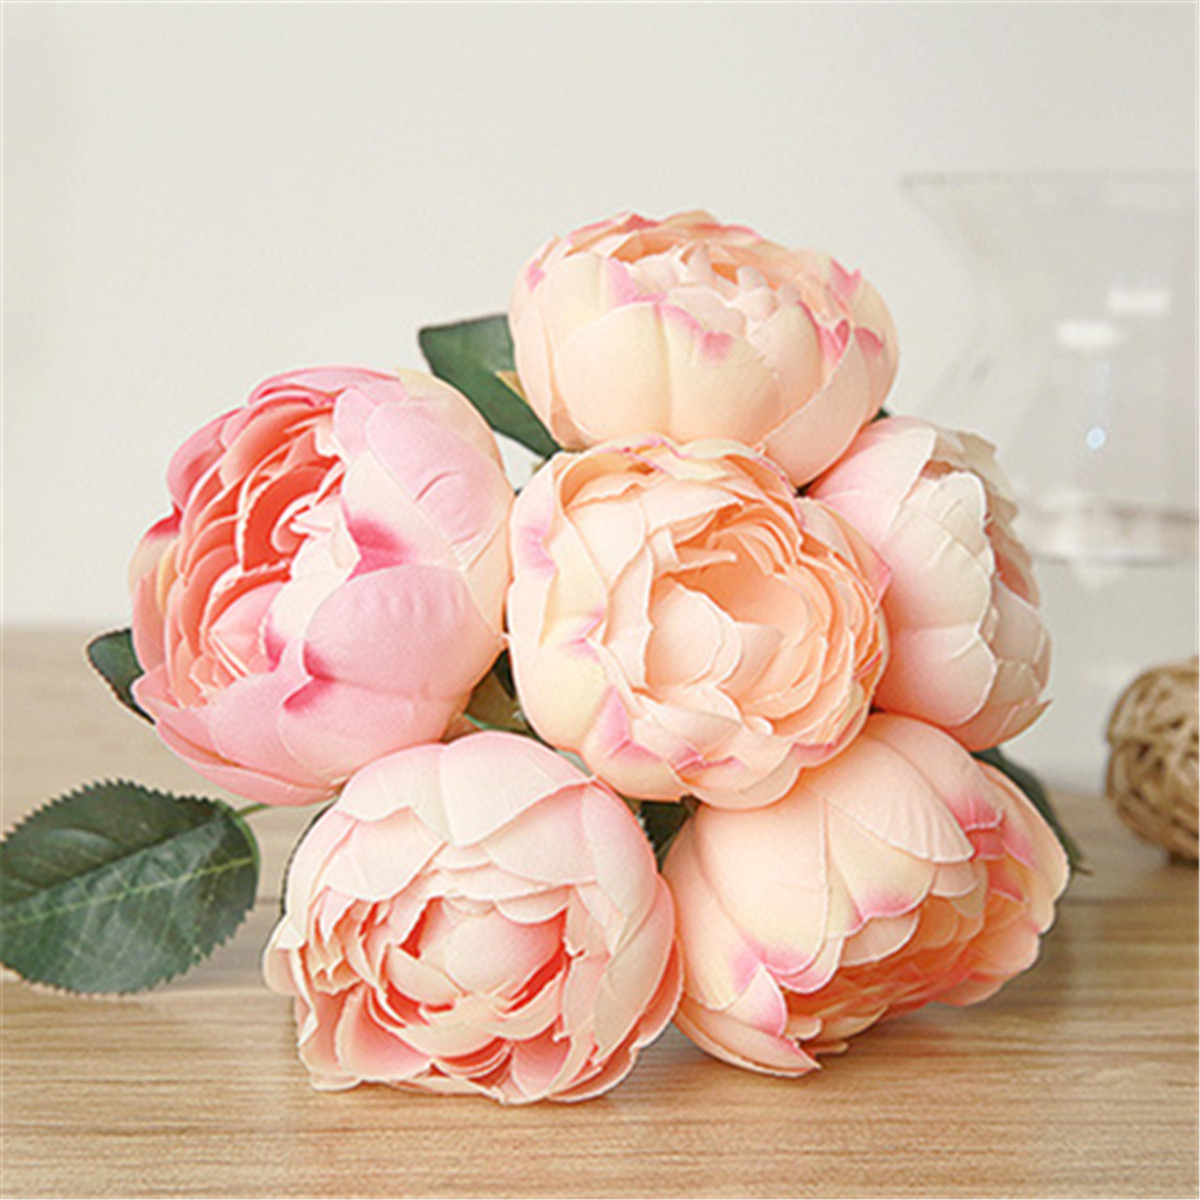 6Pcs/Pack Artificial Fake Peony Silk Flower Bridal Hydrangea Home Wedding Garden Decoration